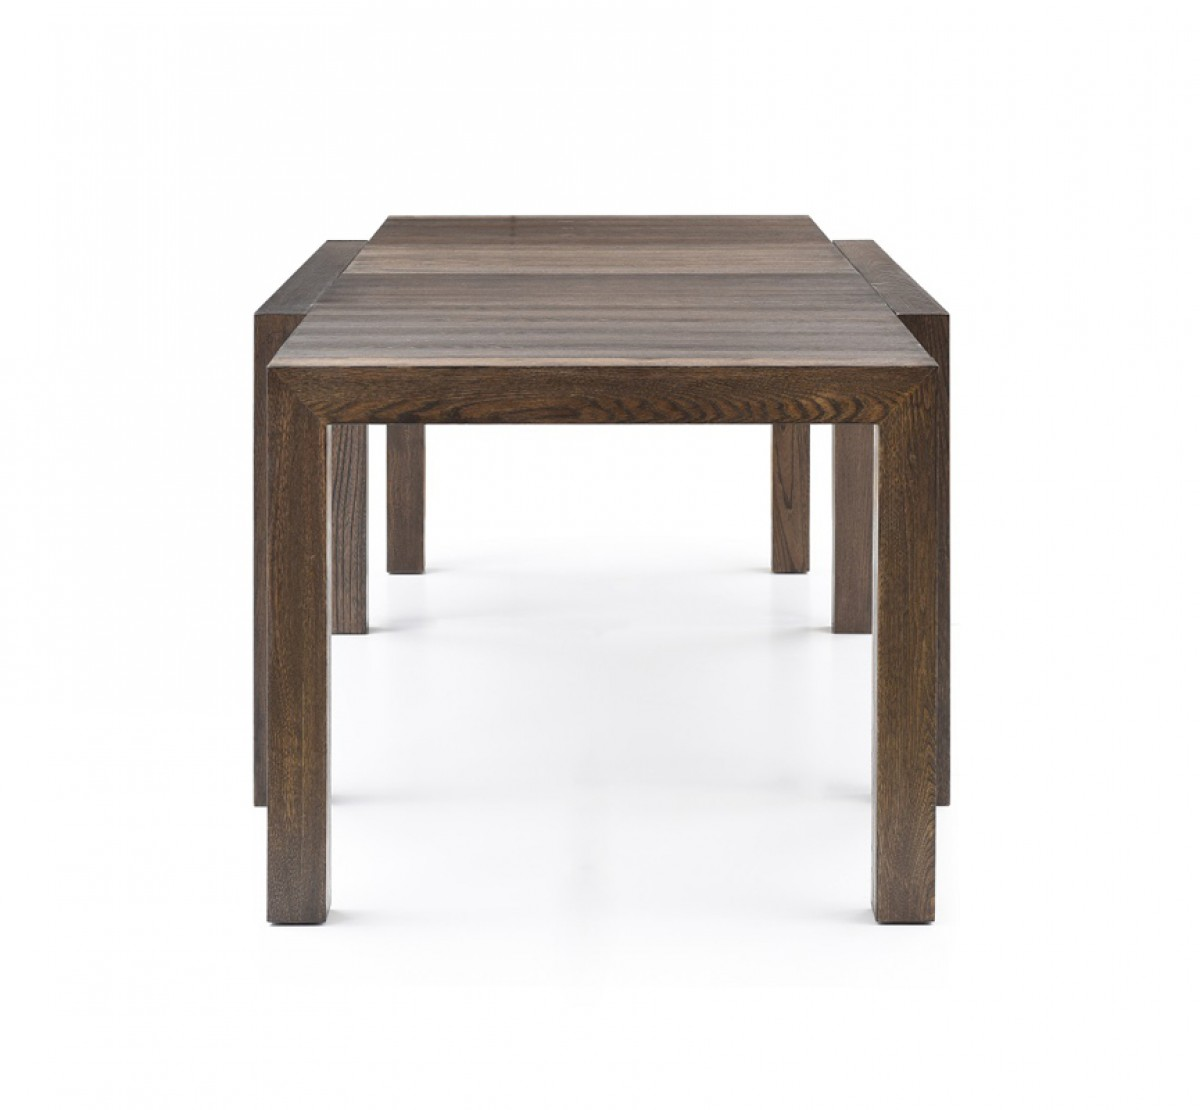 Modrest galant modern grey oak extendable dining table for Modern oak dining table